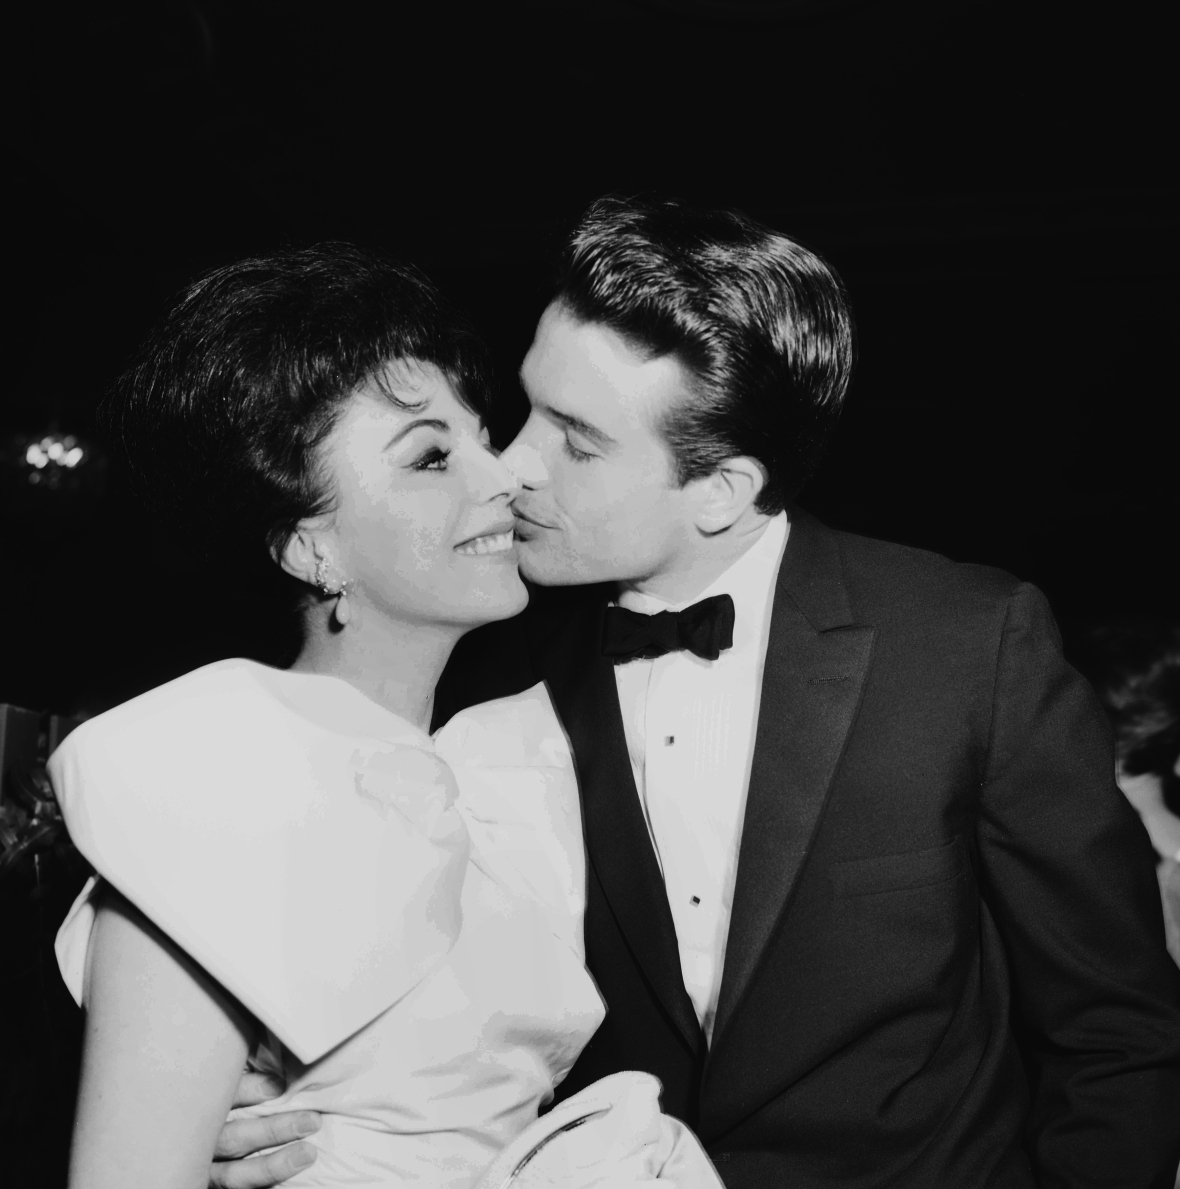 joan and warren in 1959. (photo credit: getty images)